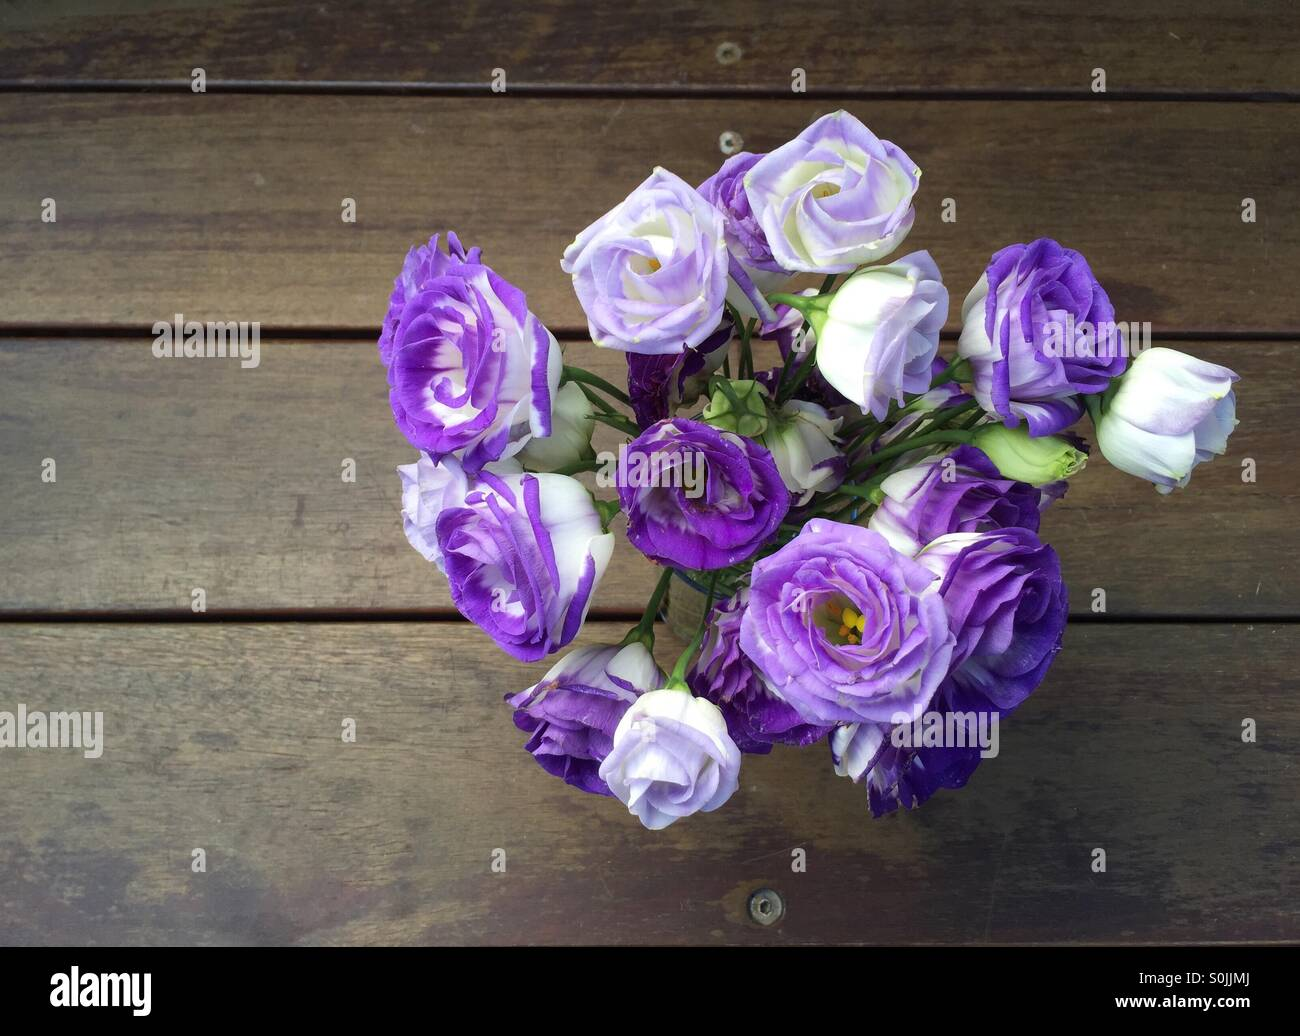 Lisianthus purple and white flowers - Stock Image